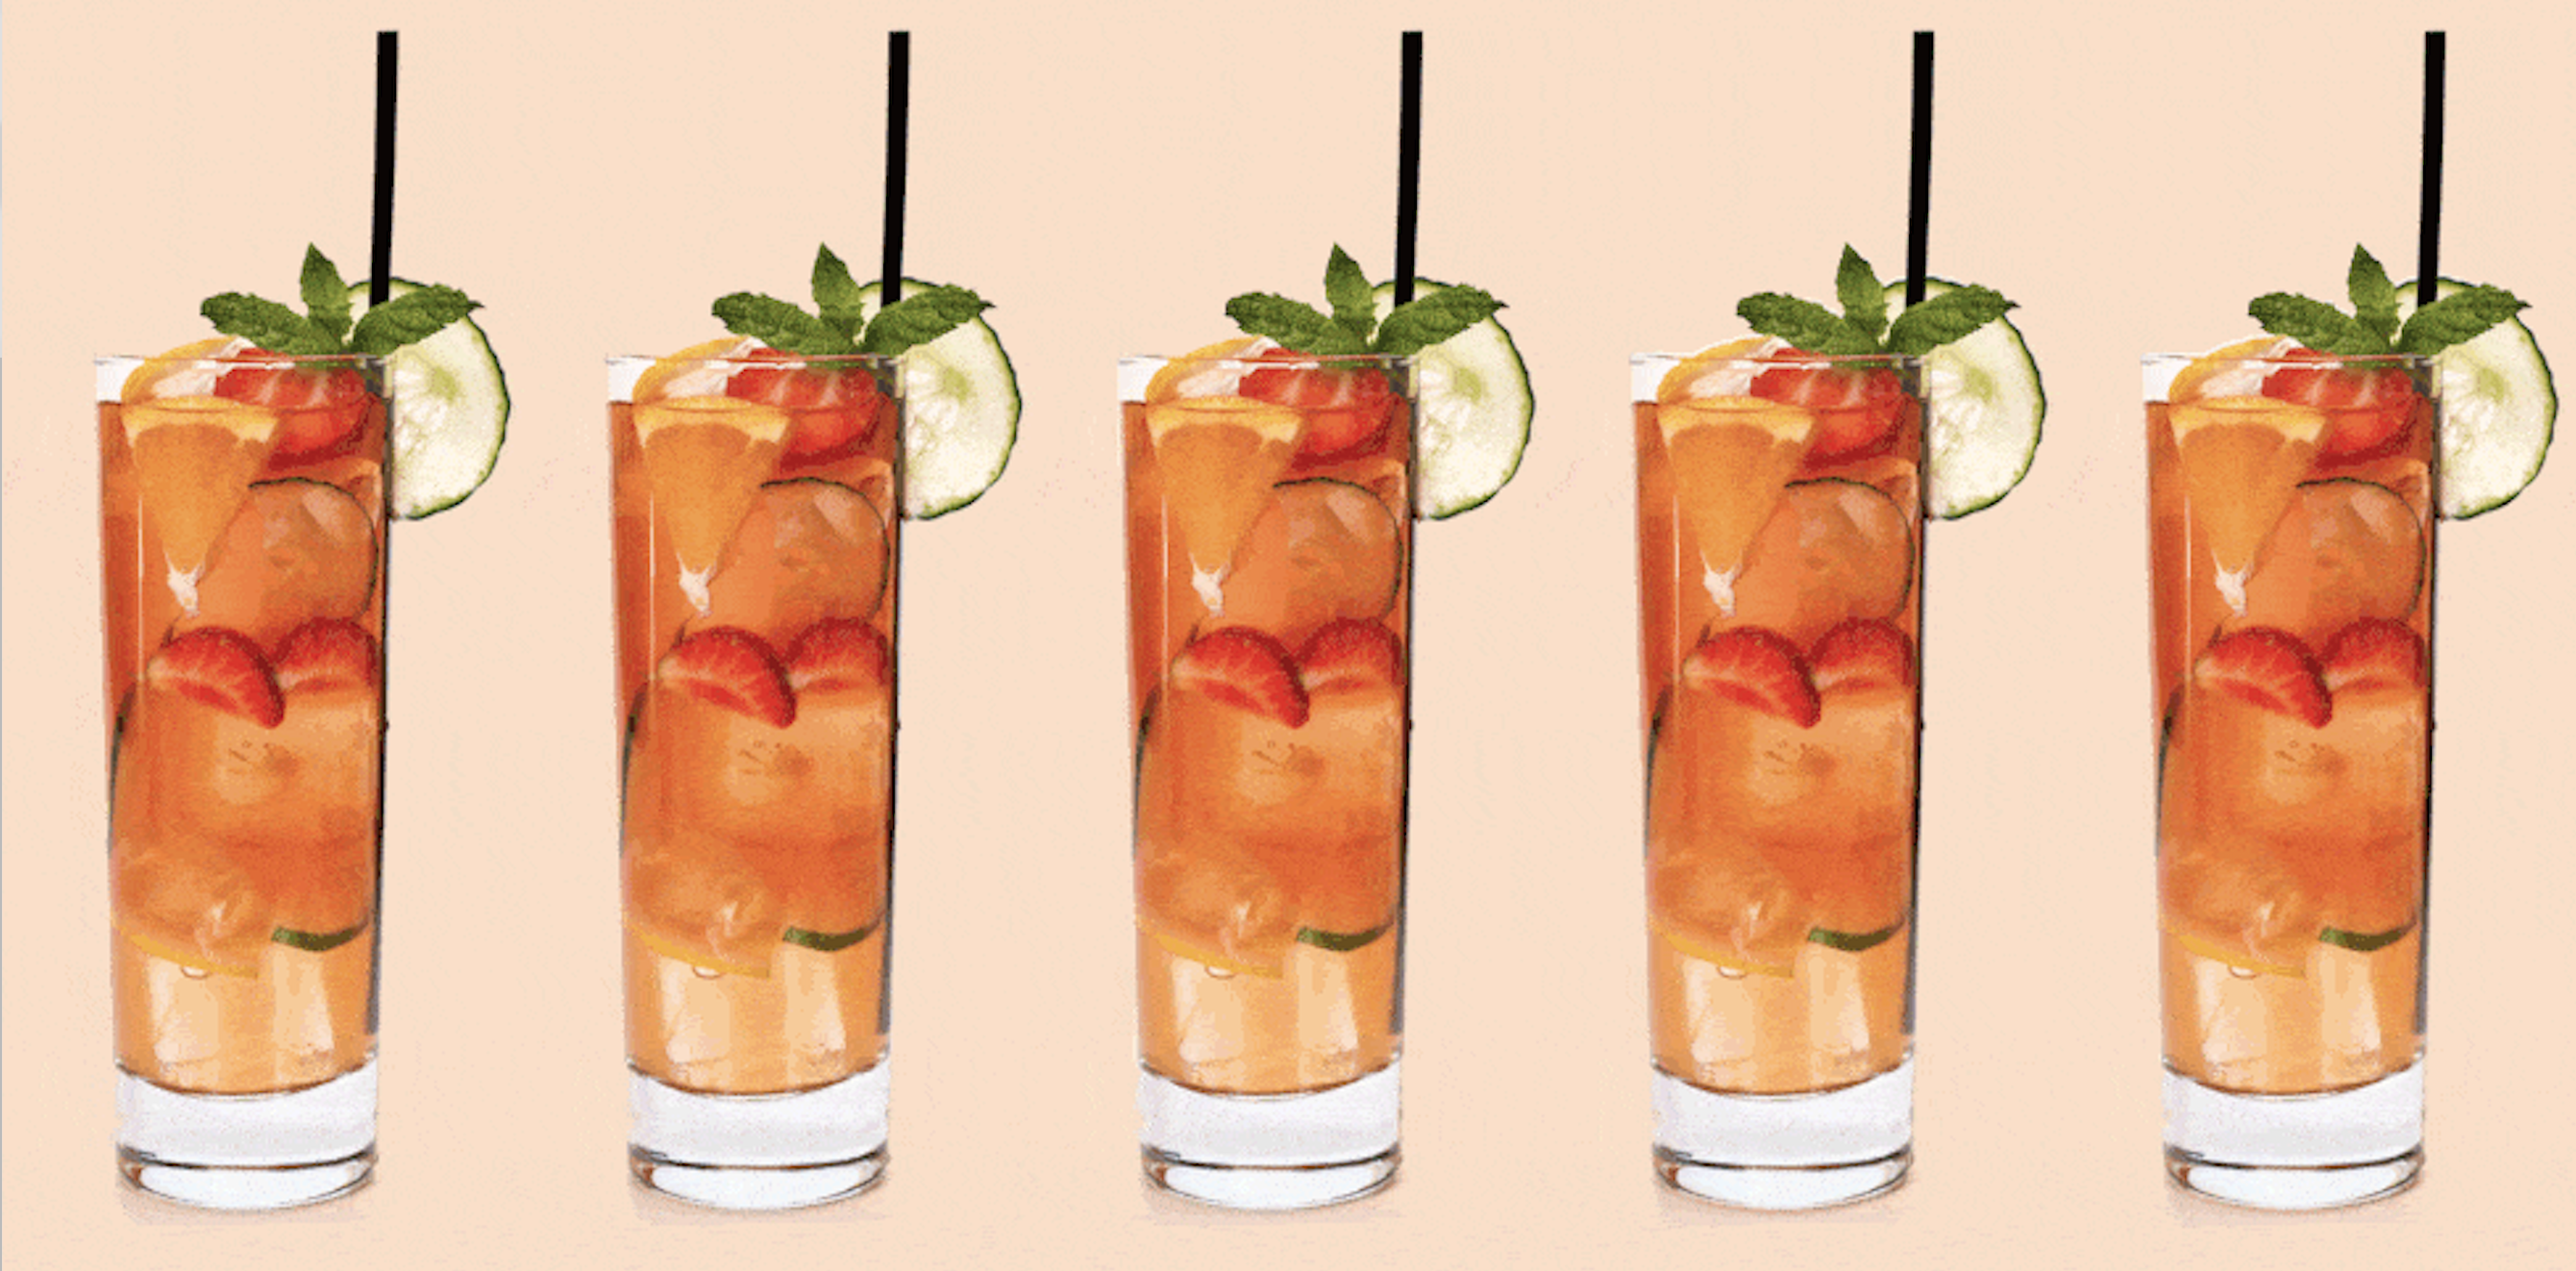 Pimm's Cup Recipe - How To Make a Pimms Cup for Wimbledon 2018 on